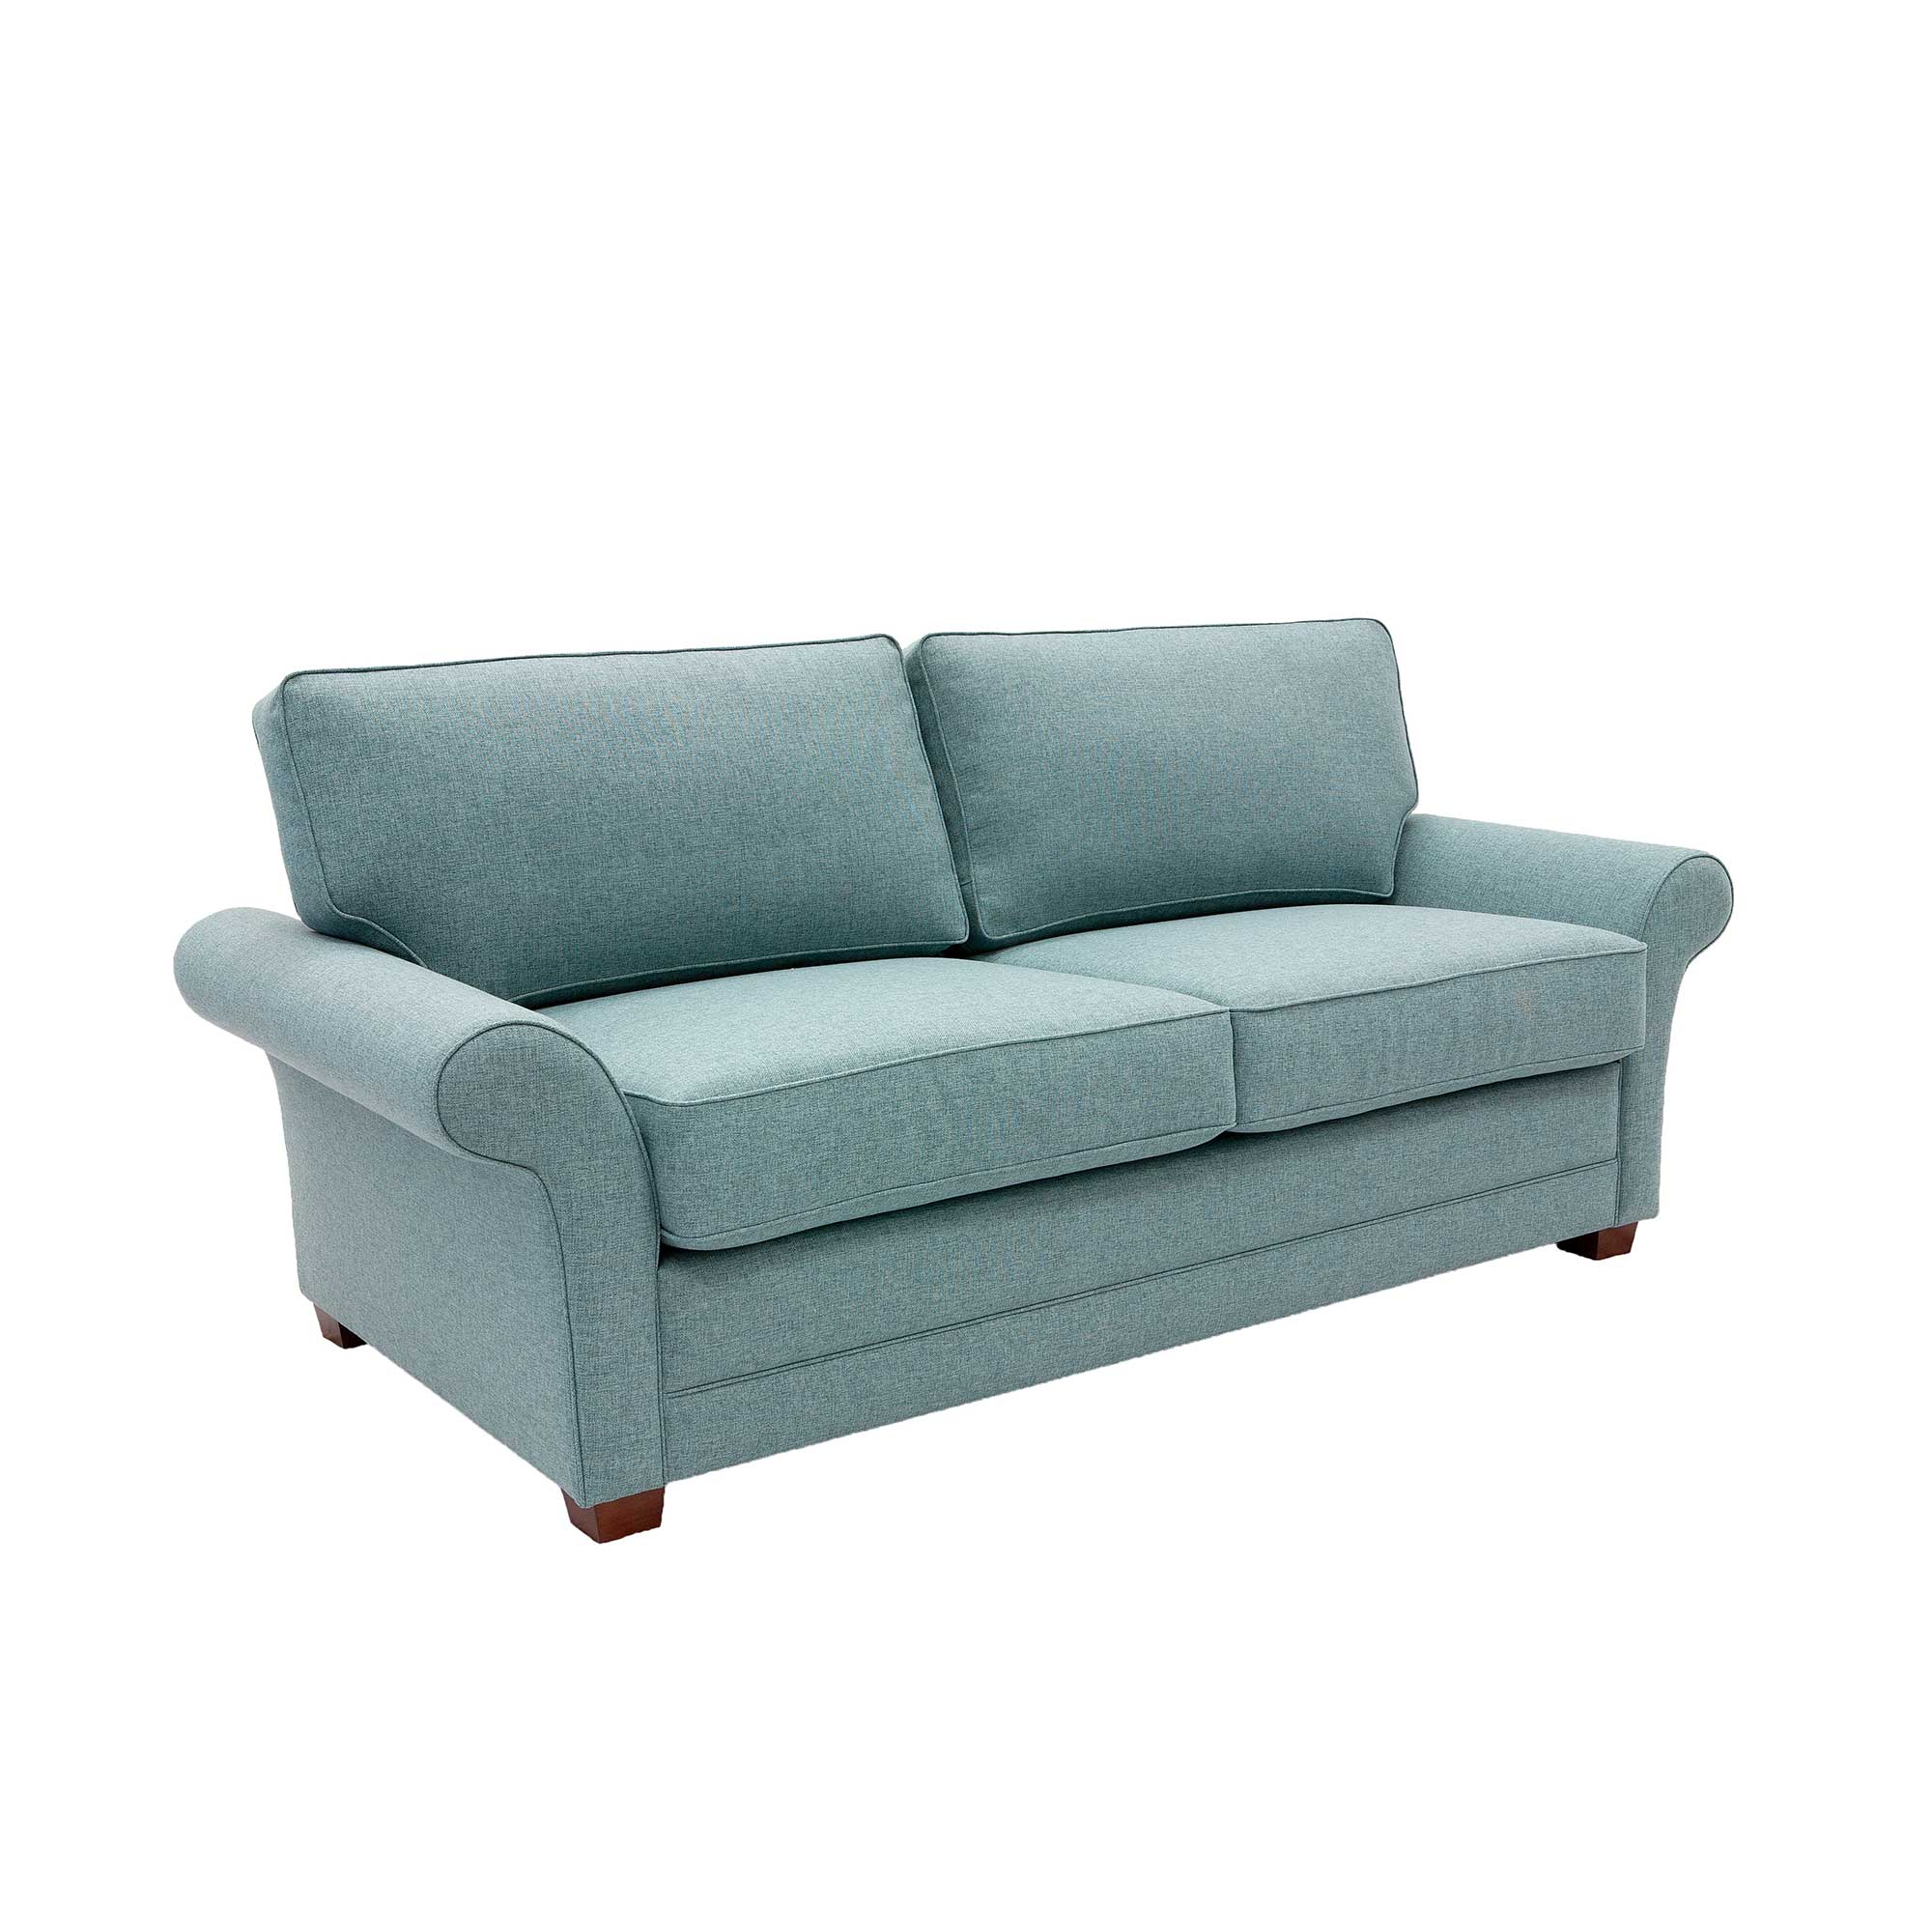 Baxter sofa moran furniture for Com furniture